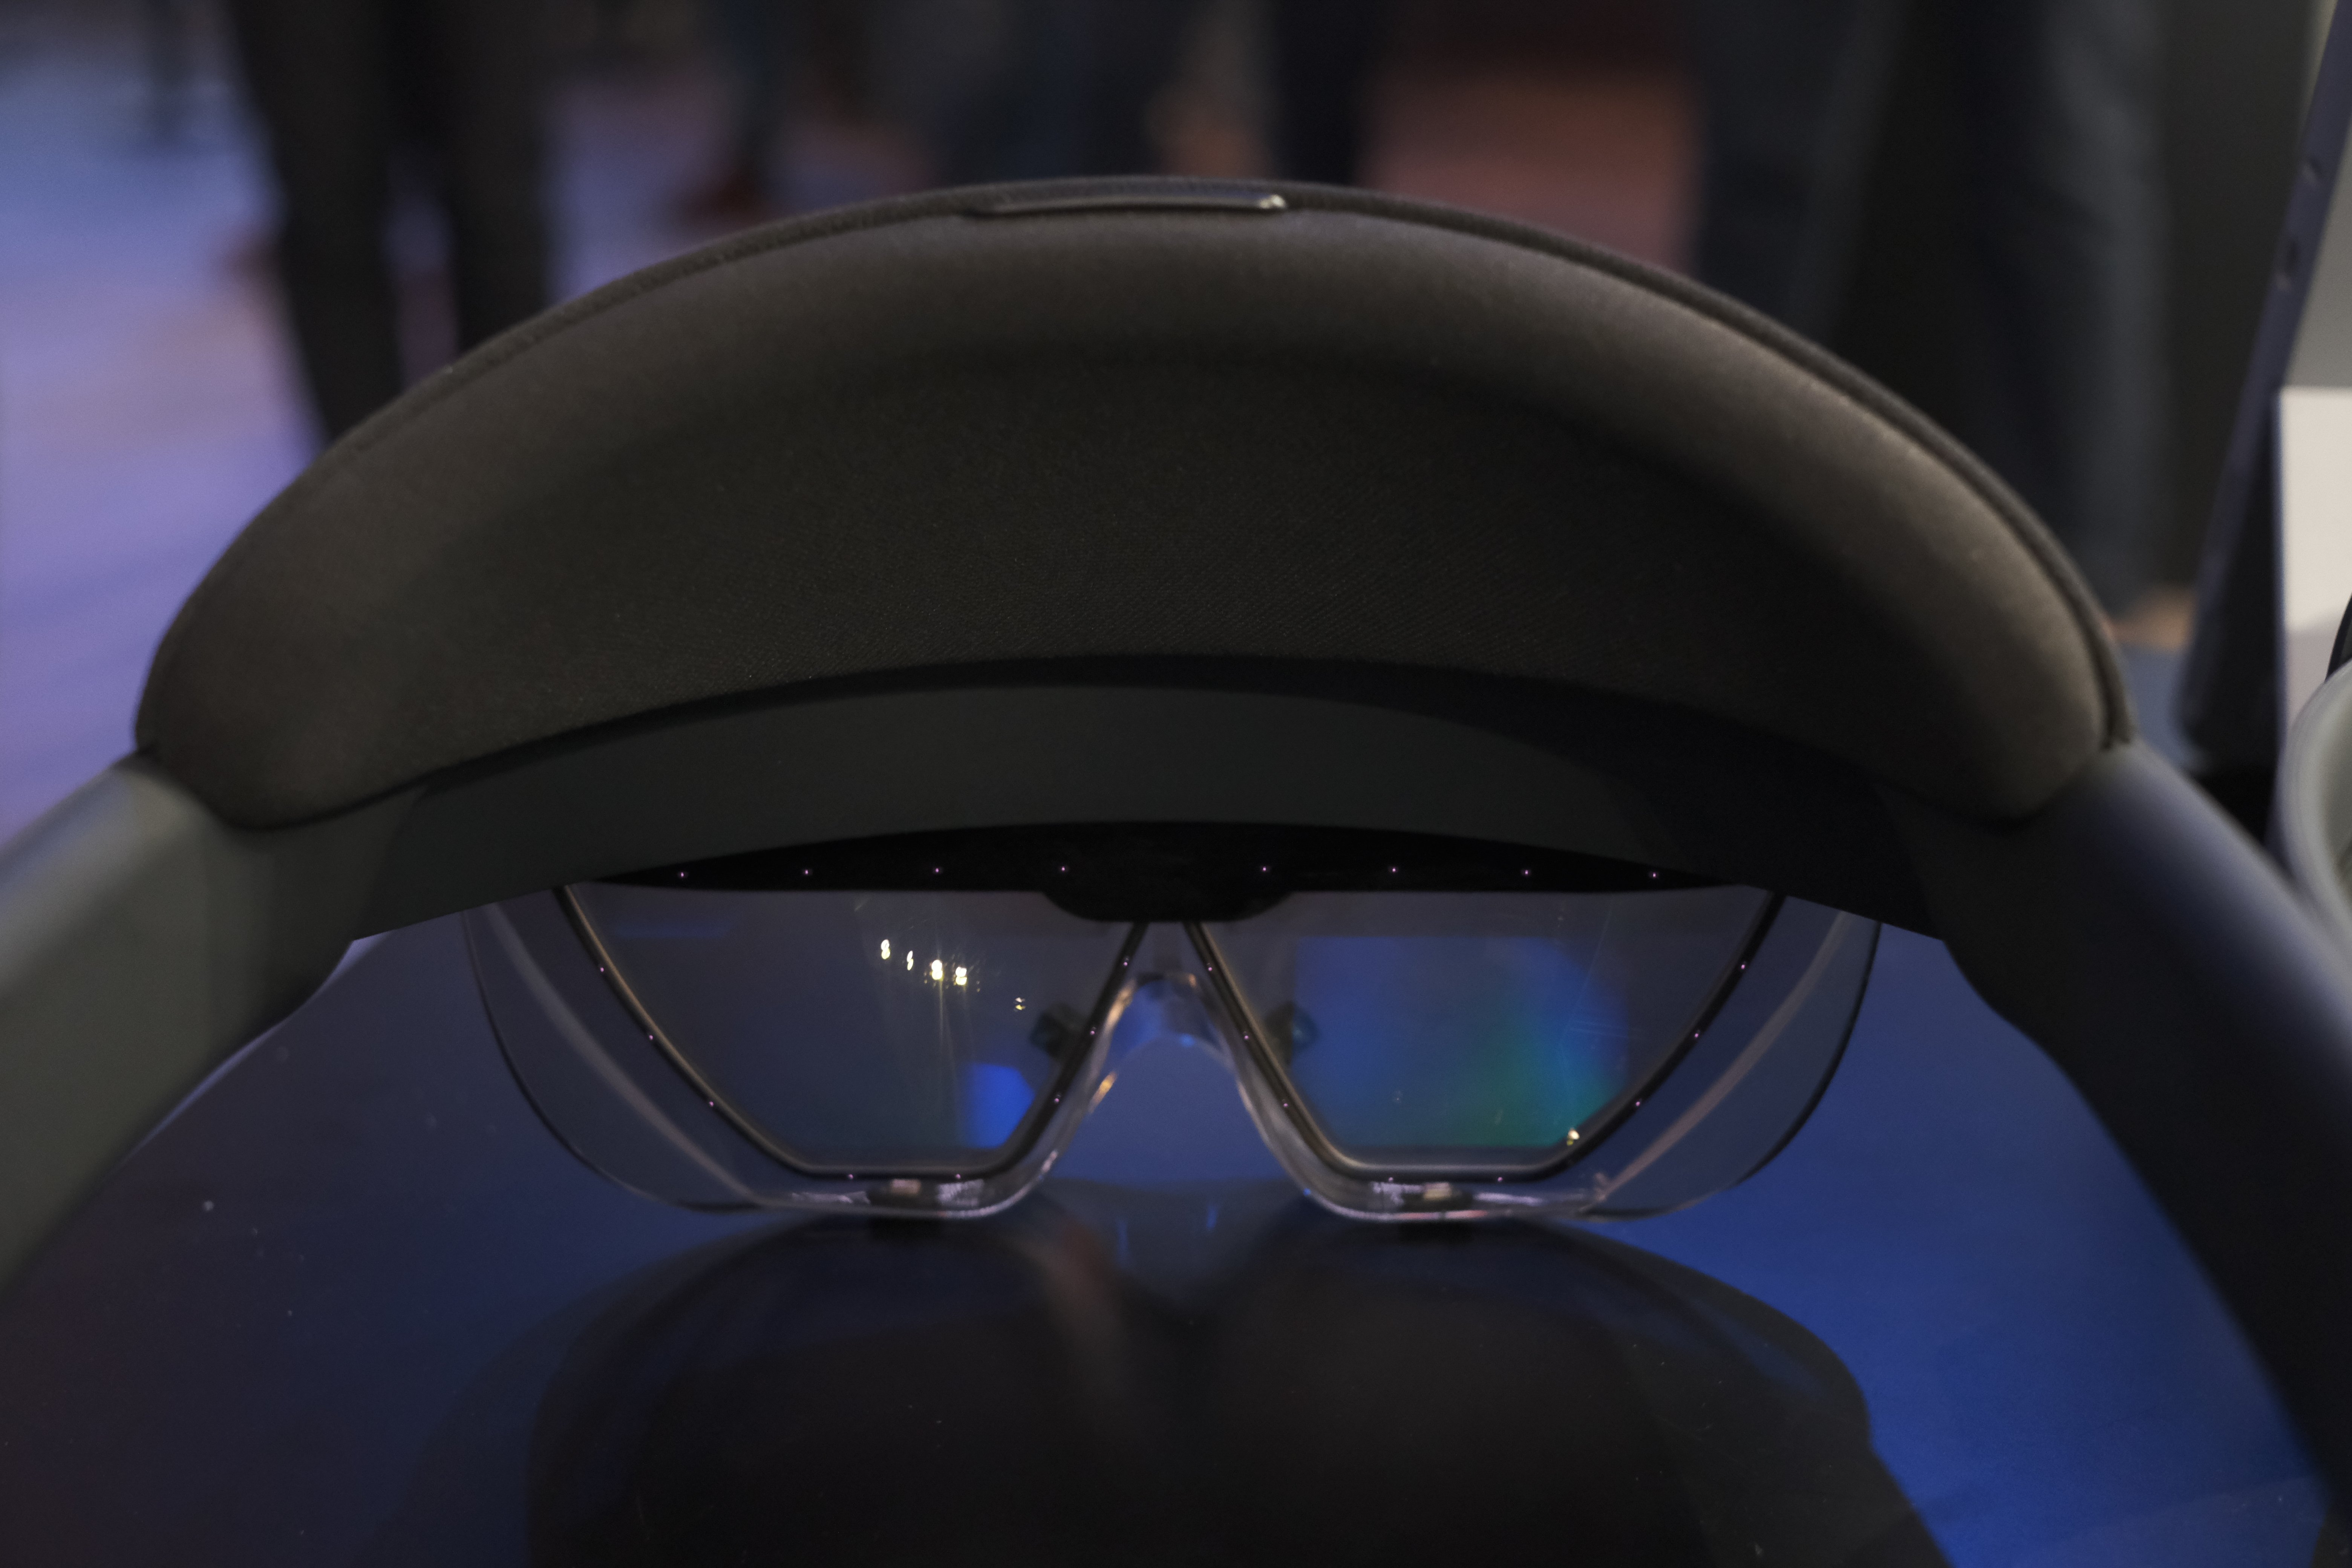 Hands-on with Microsoft's new HoloLens 2 | TechCrunch